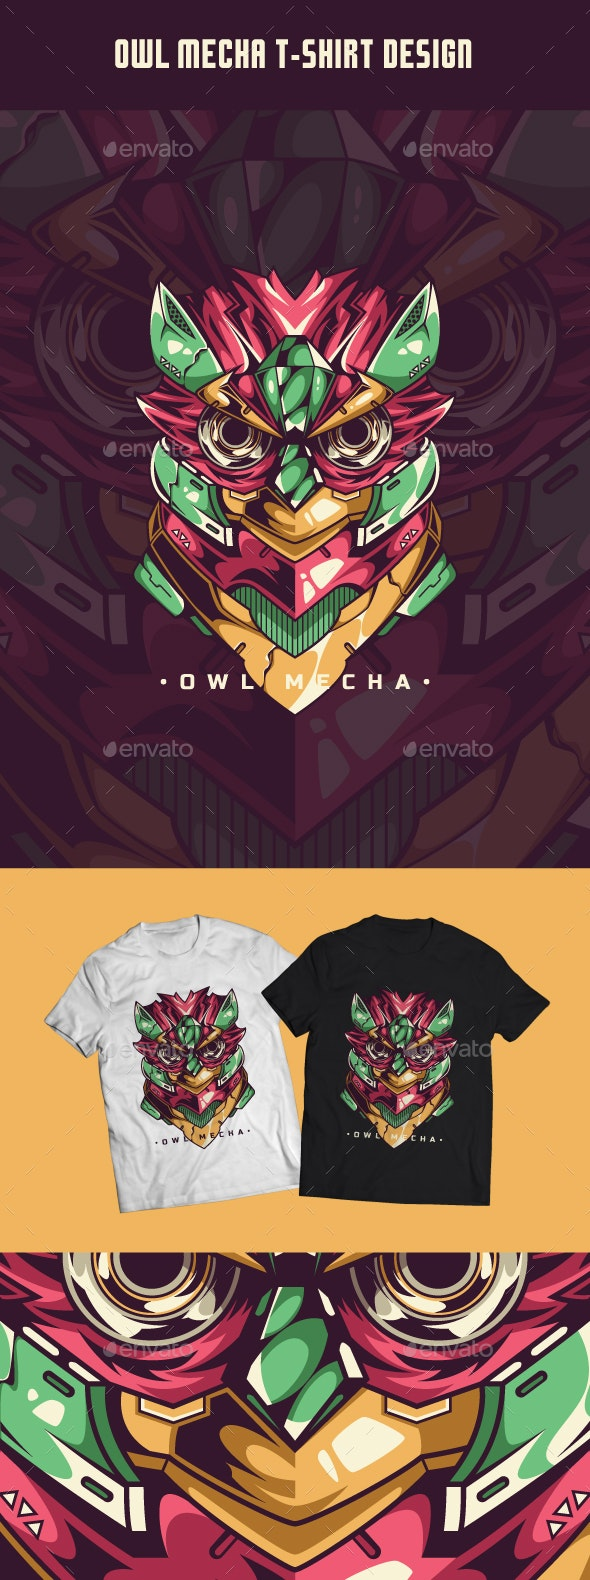 Owl Mecha T-Shirt Design - Designs T-Shirts